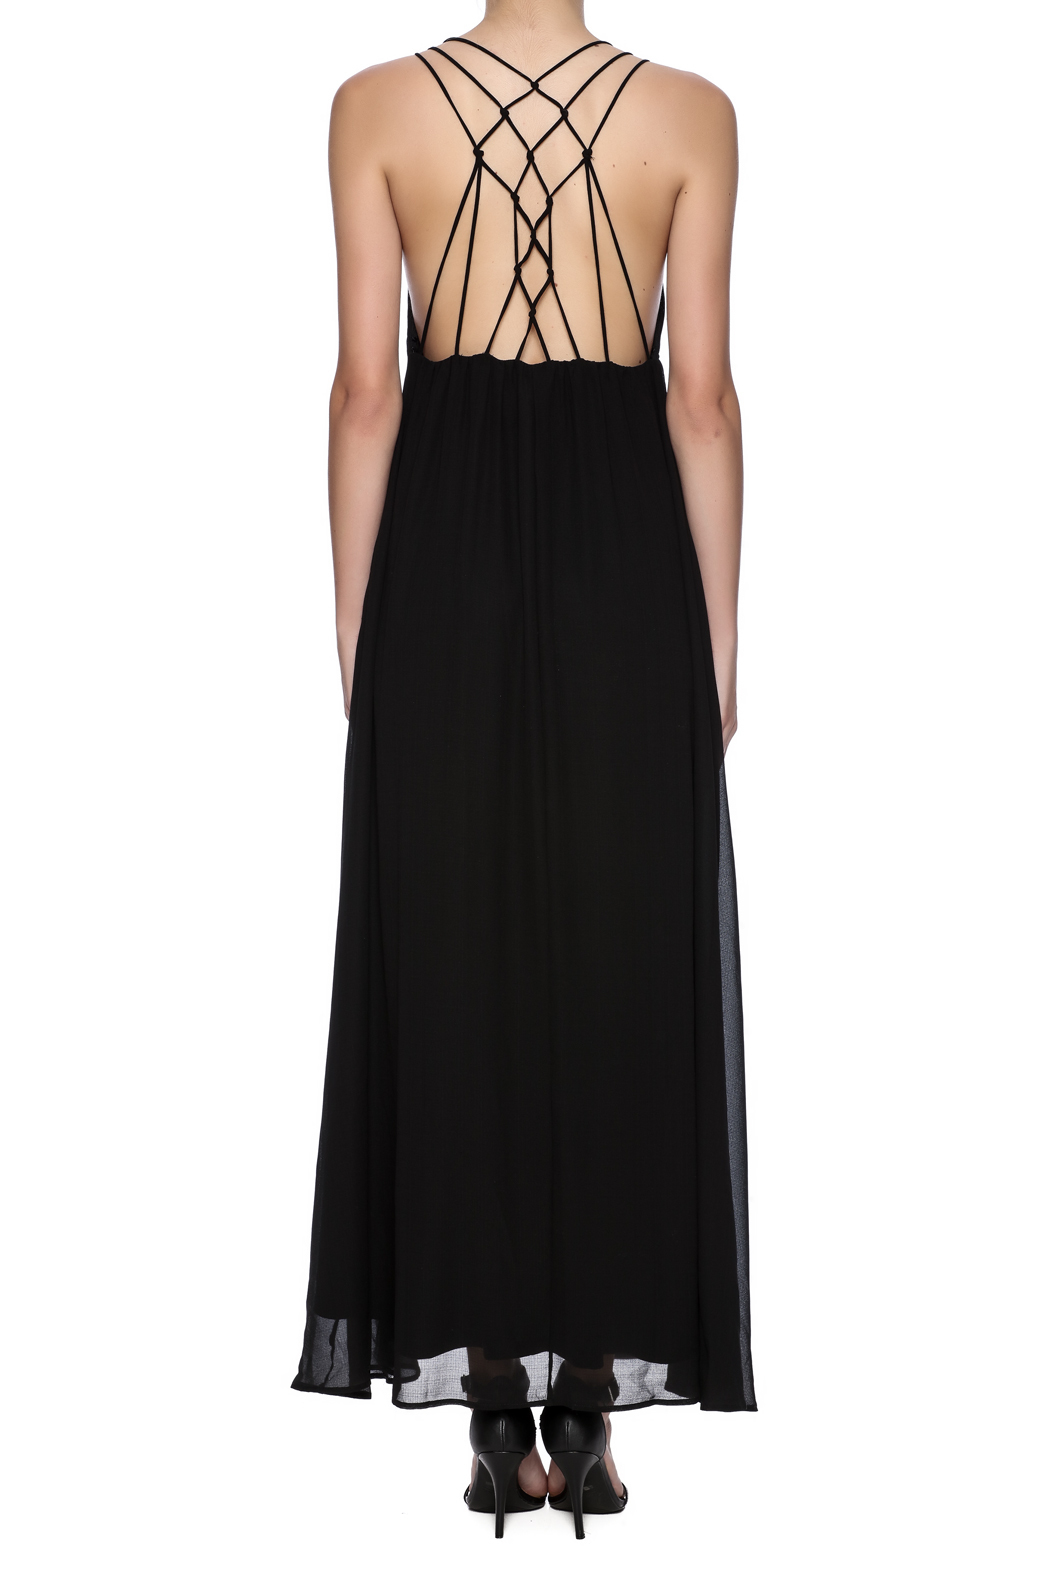 fashion on earth Black String Back Maxi - Back Cropped Image